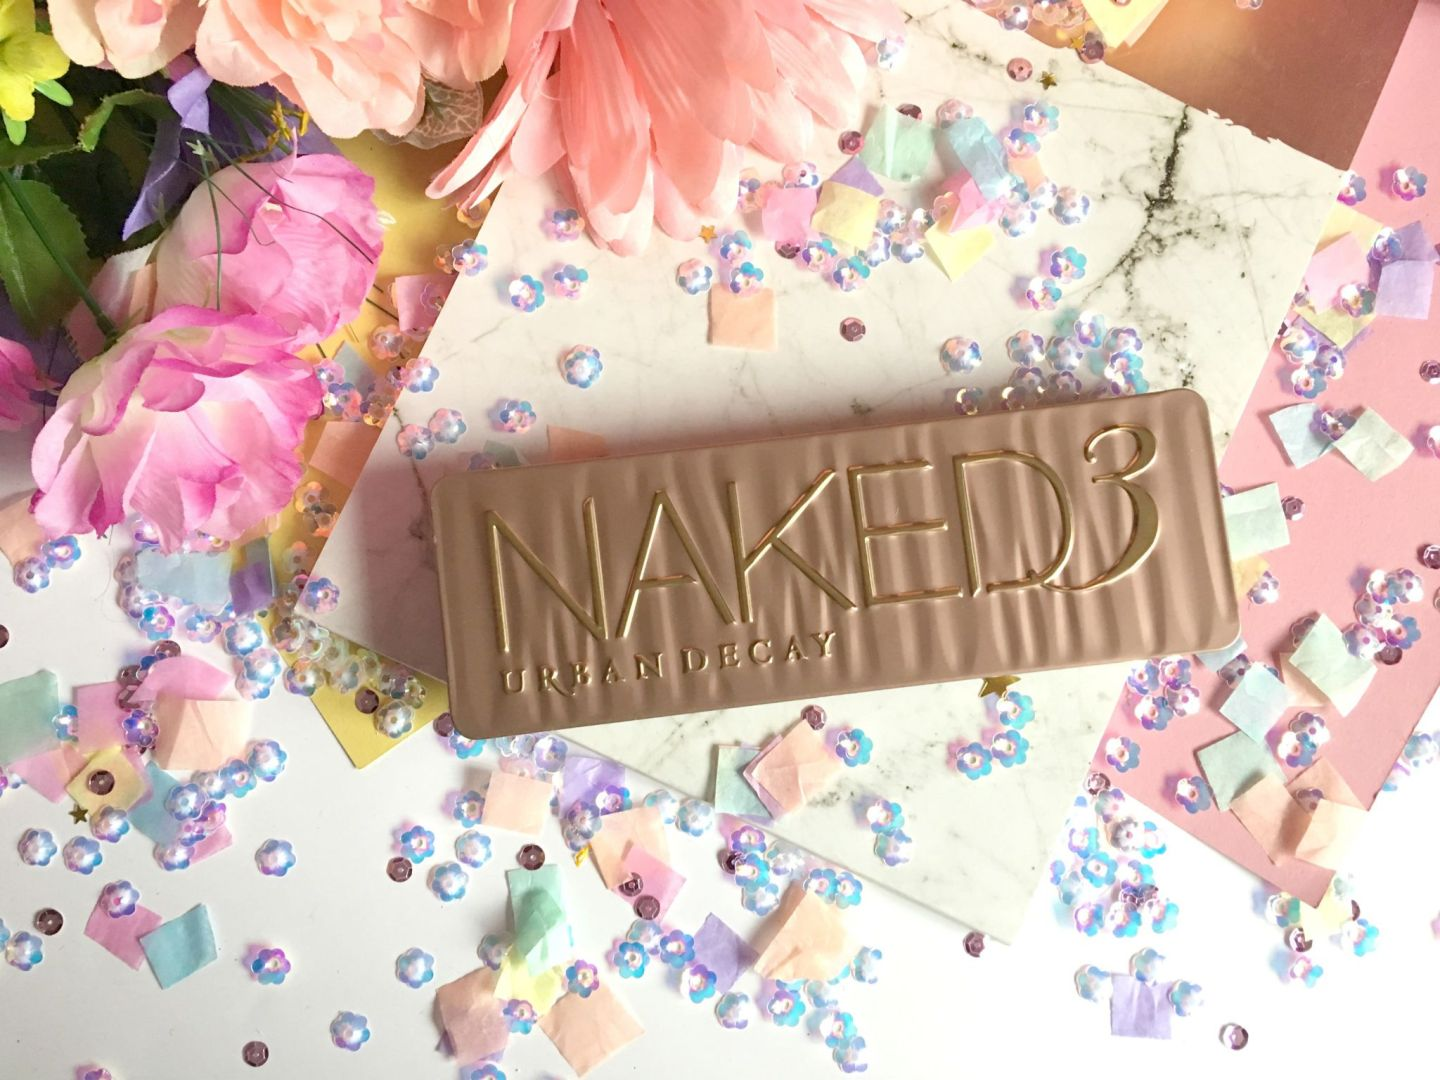 Urban Decay Naked Palettes (3)